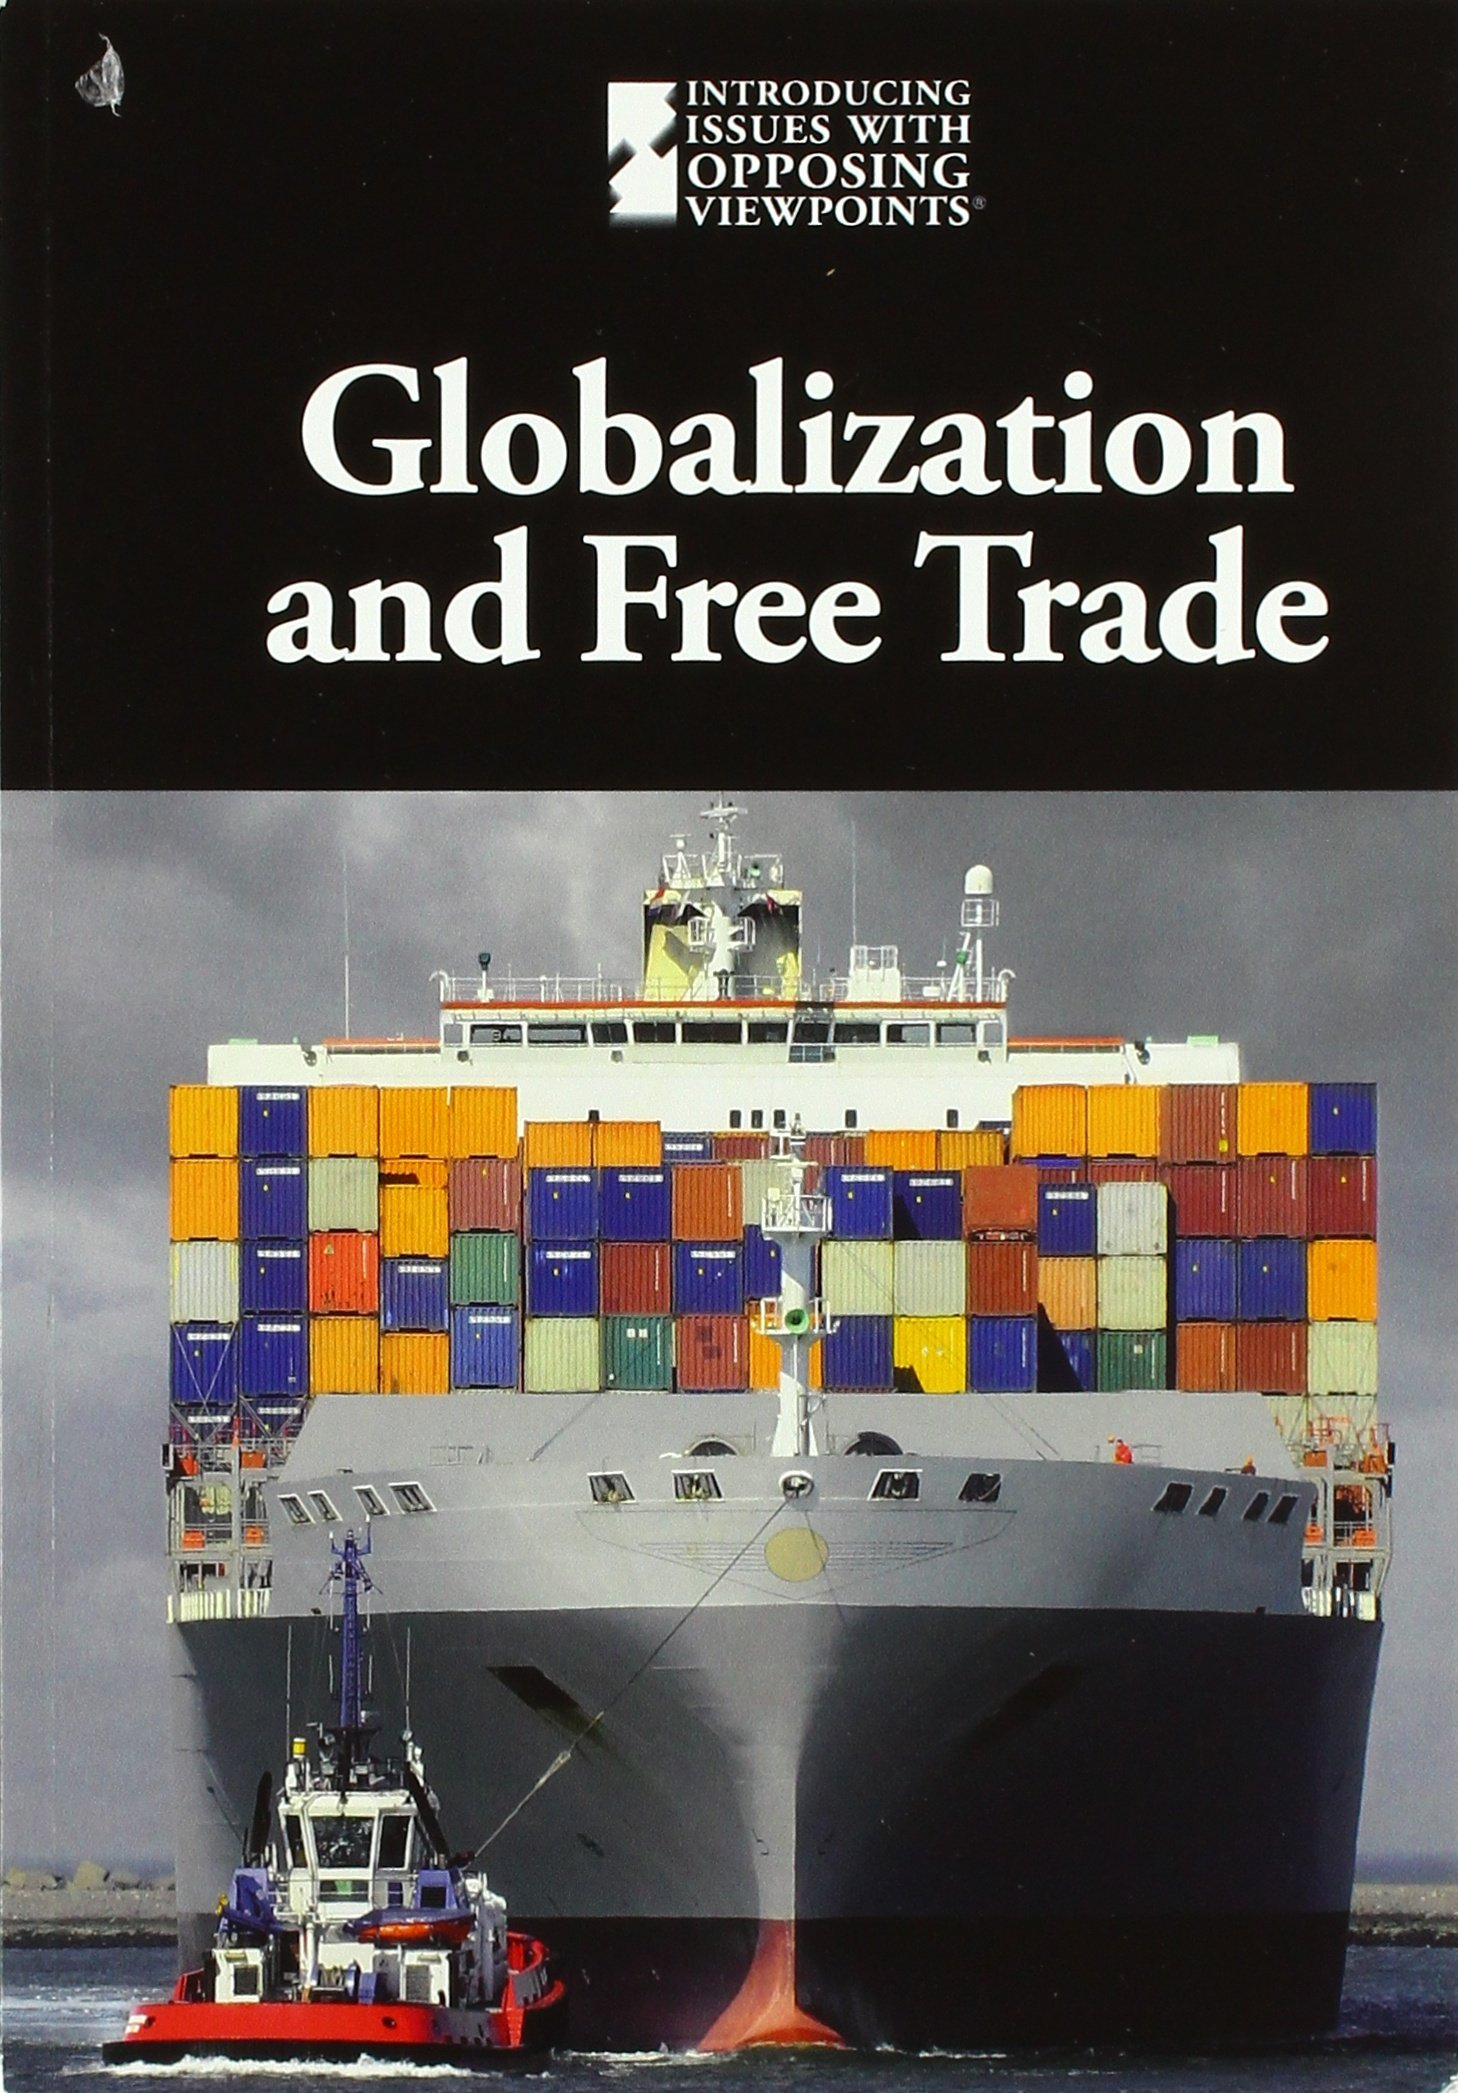 Globalization and Free Trade (Introducing Issues With Opposing Viewpoints) PDF